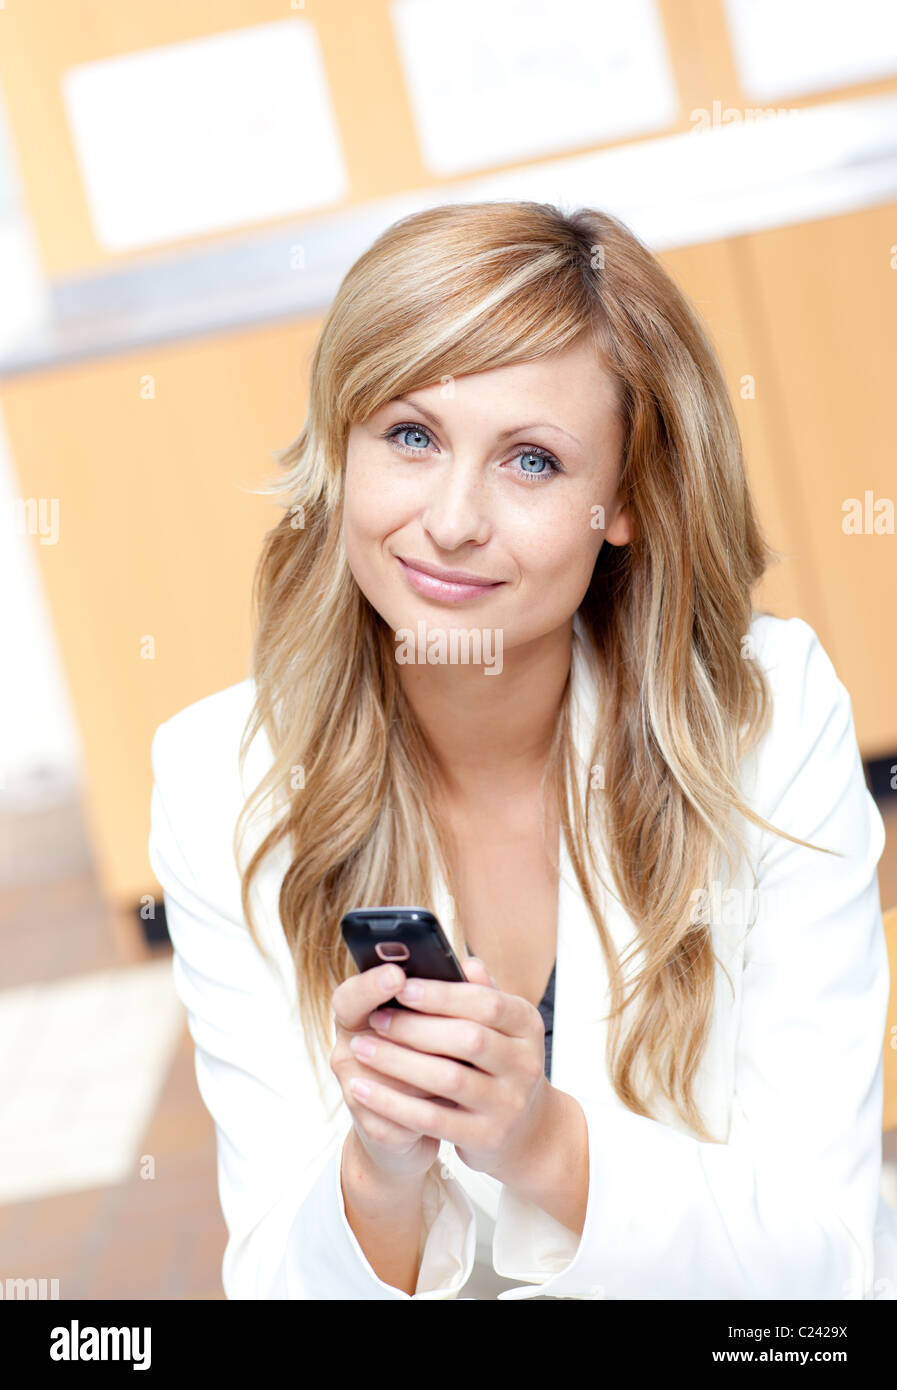 Radiant businesswoman sending a text message with her cellphone - Stock Image